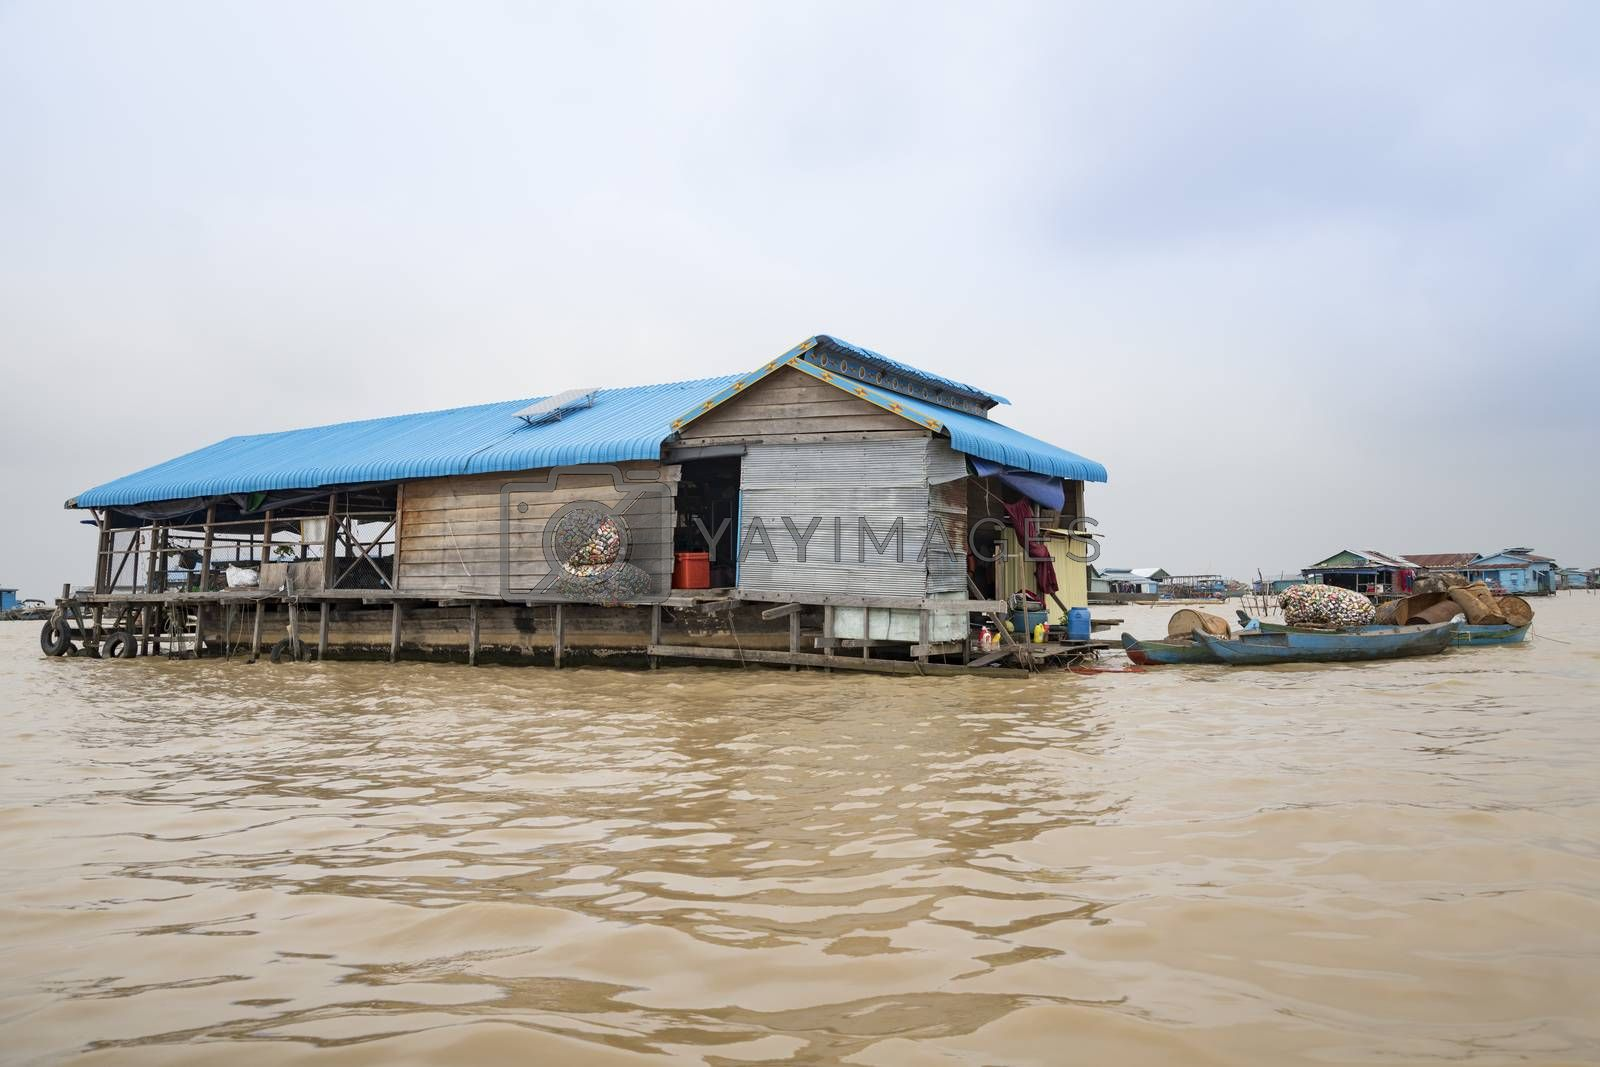 A building of a floating village llying on the Tonle Sap lake, Siem Reap Province, Cambodia